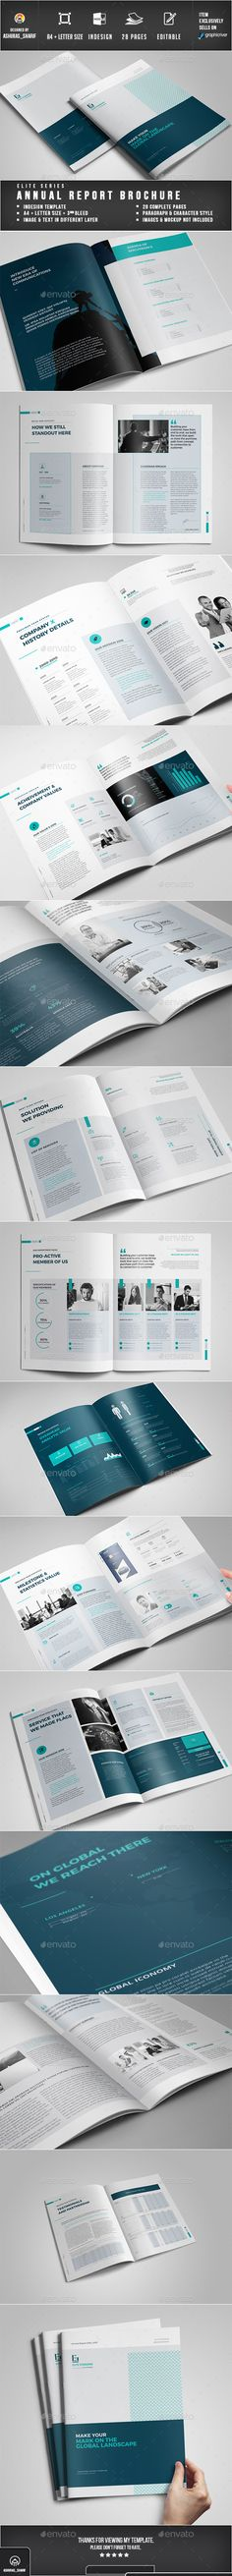 Annual Report Template 	InDesign INDD. Download here: https://graphicriver.net/item/annual-report/17318516?ref=ksioks